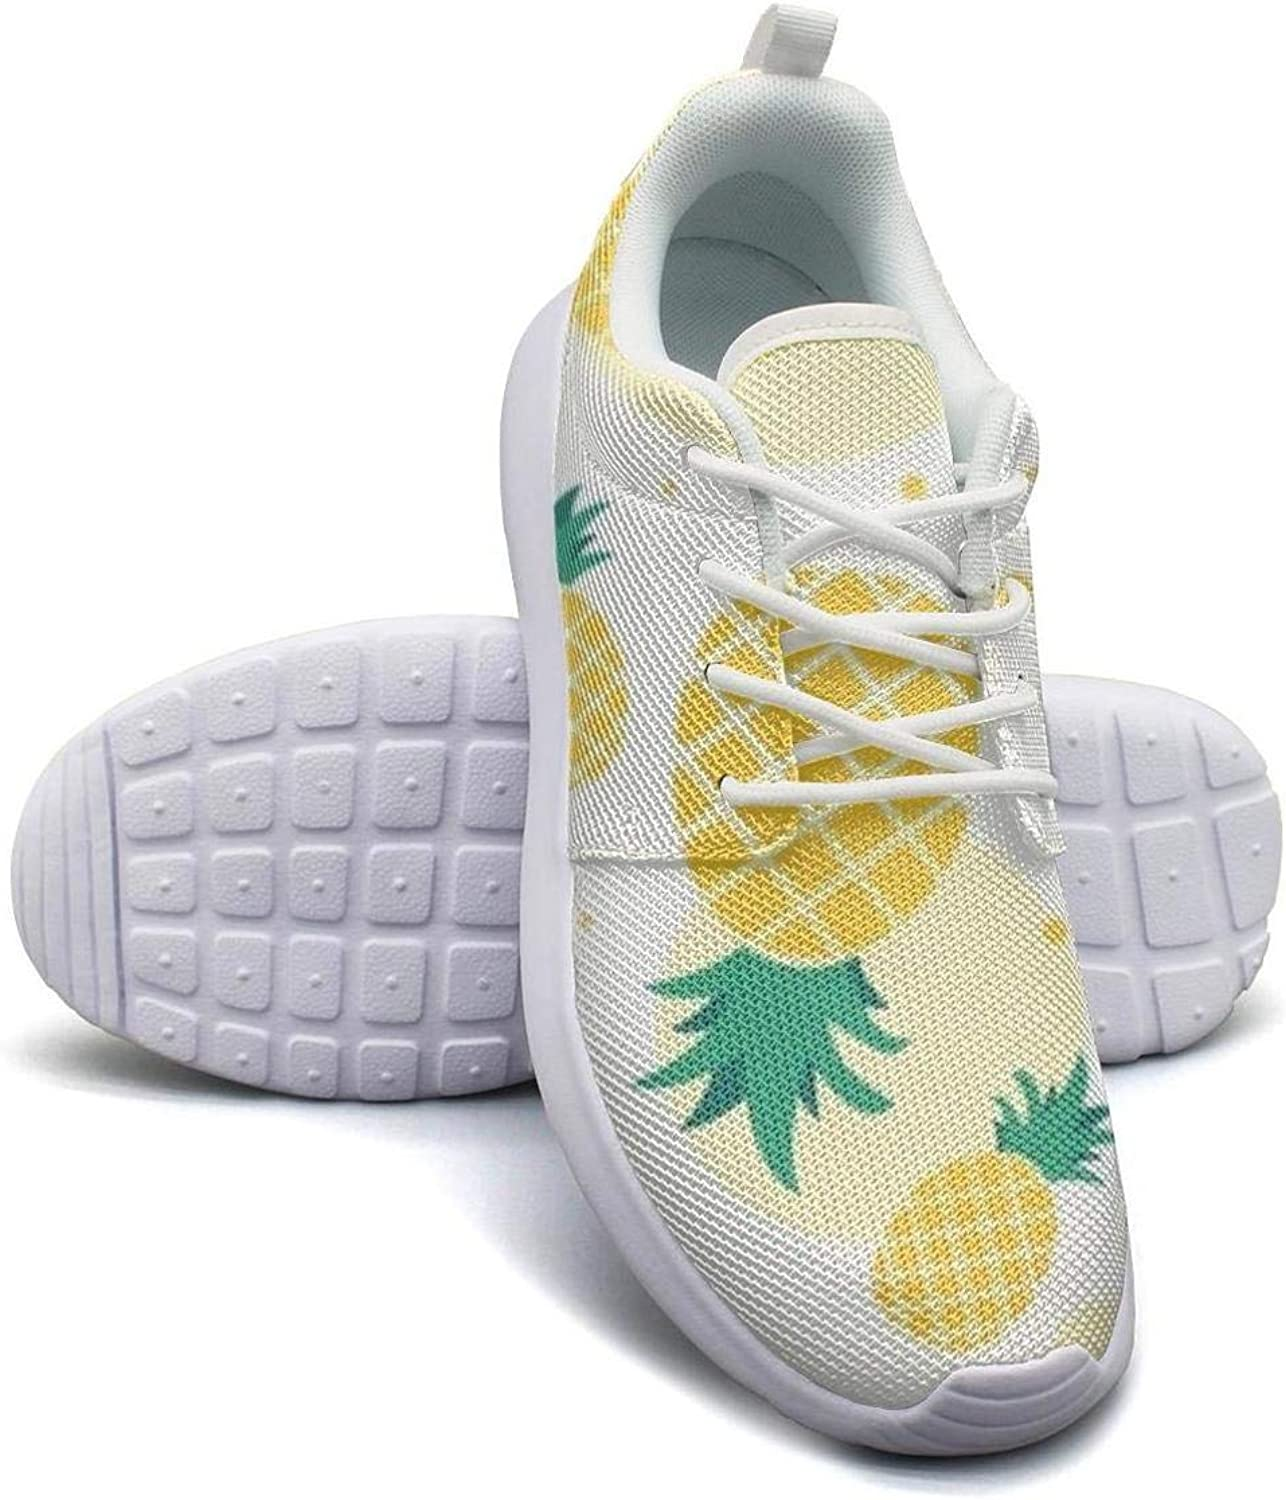 Kanf saysfg Pineapple Flamingo Fashion Running Sneakers for Women Lightweight Breathabl Balls shoes